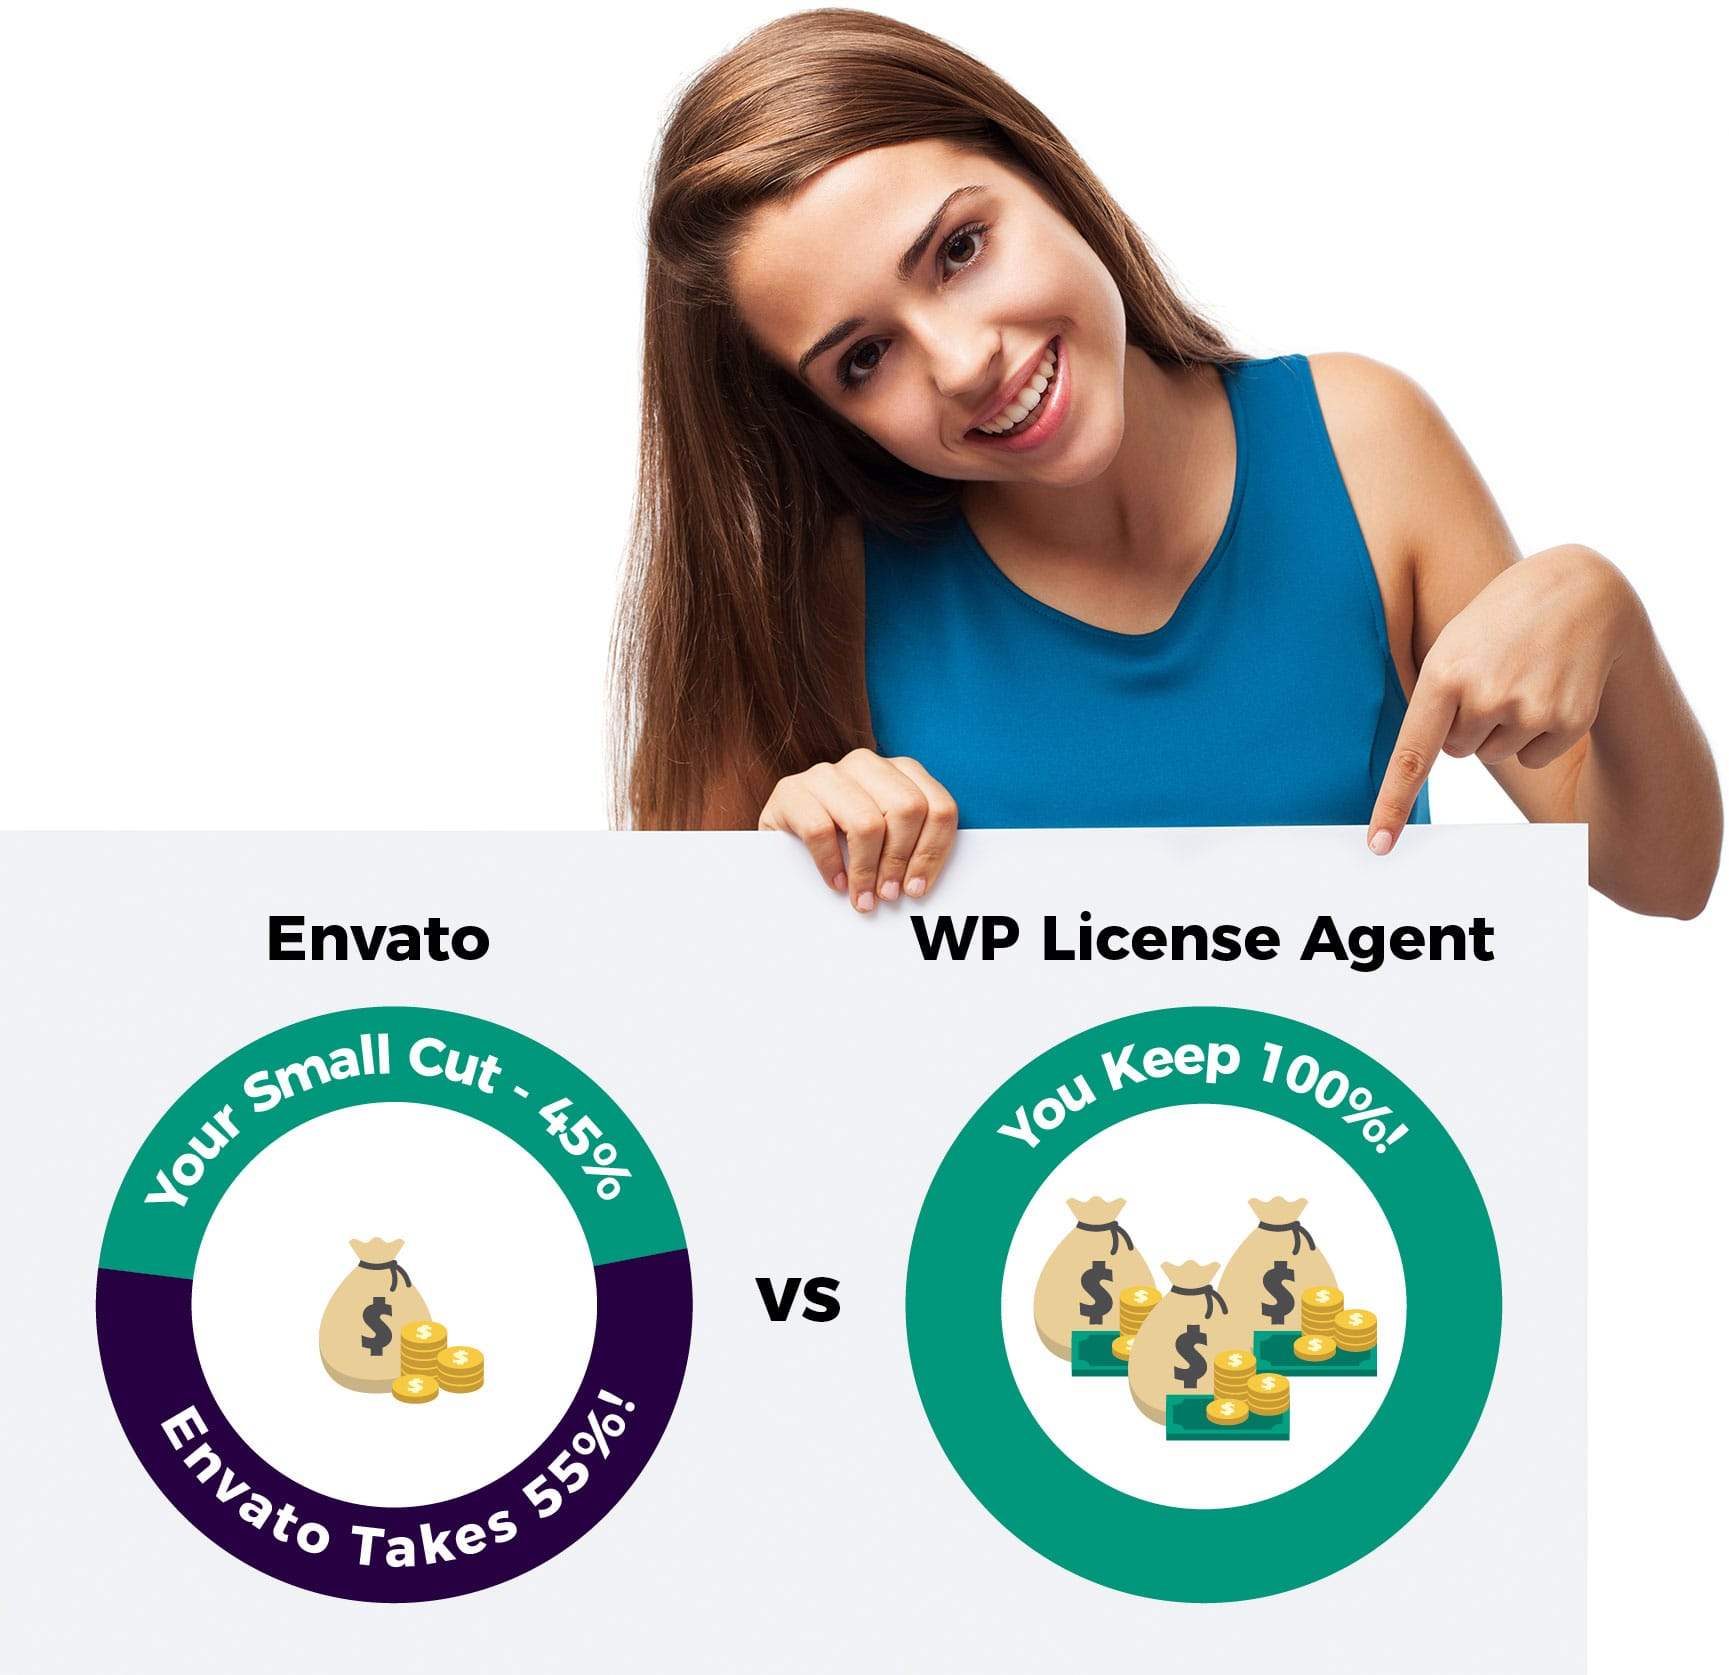 WP License Agent vs Envato image